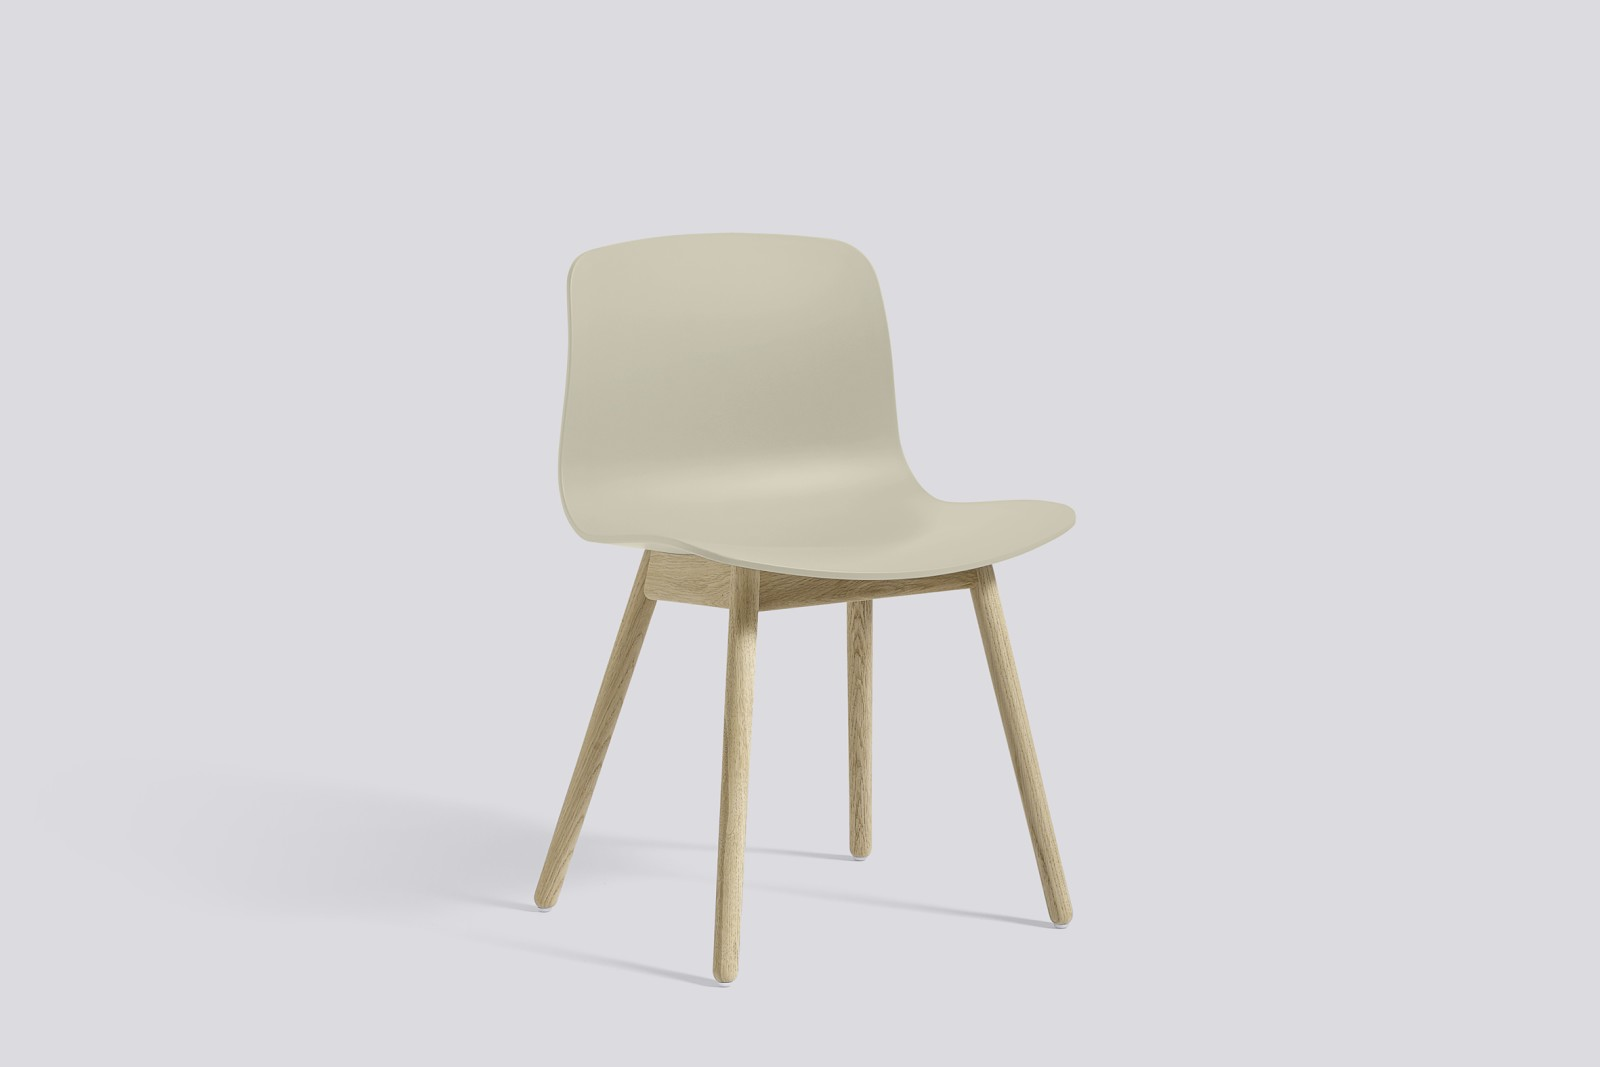 About A Chair AAC12 Pastel Green Seat and Soap Treated Oak Base